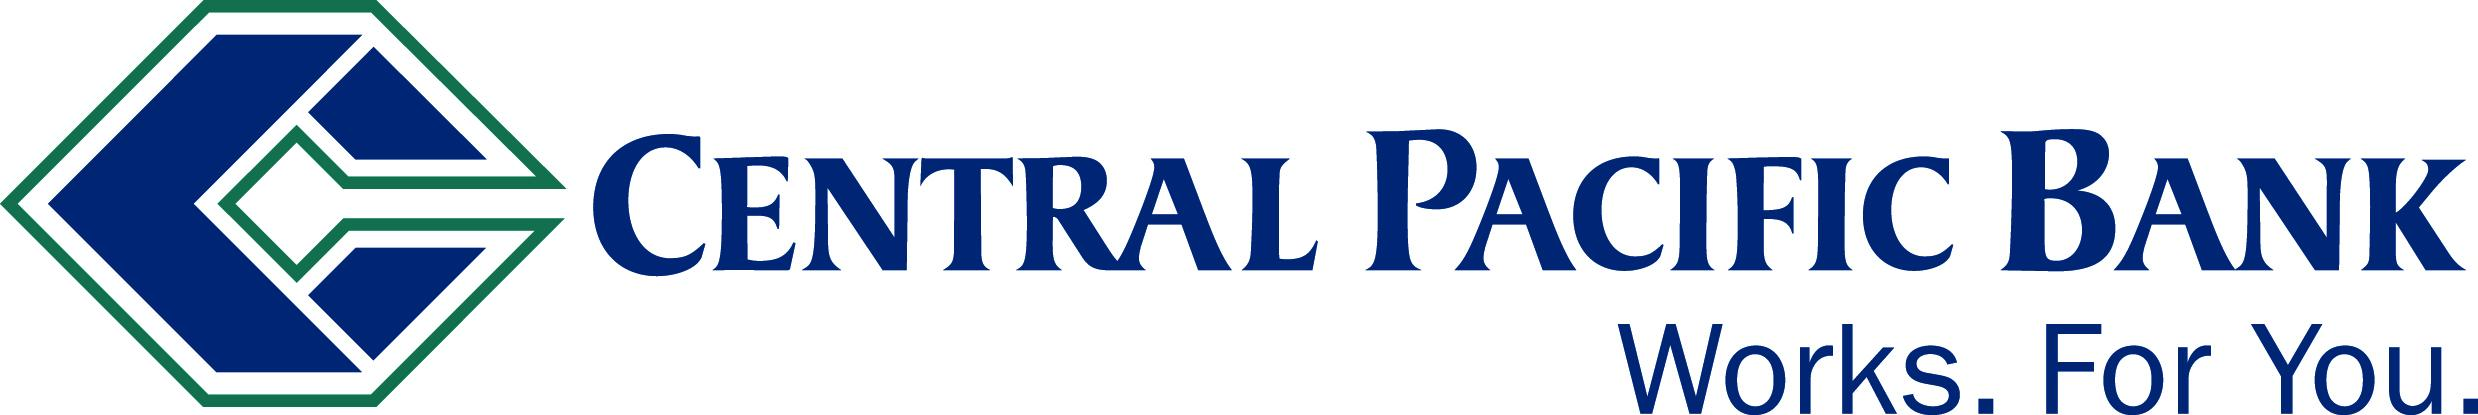 central-pacific-bank.jpg